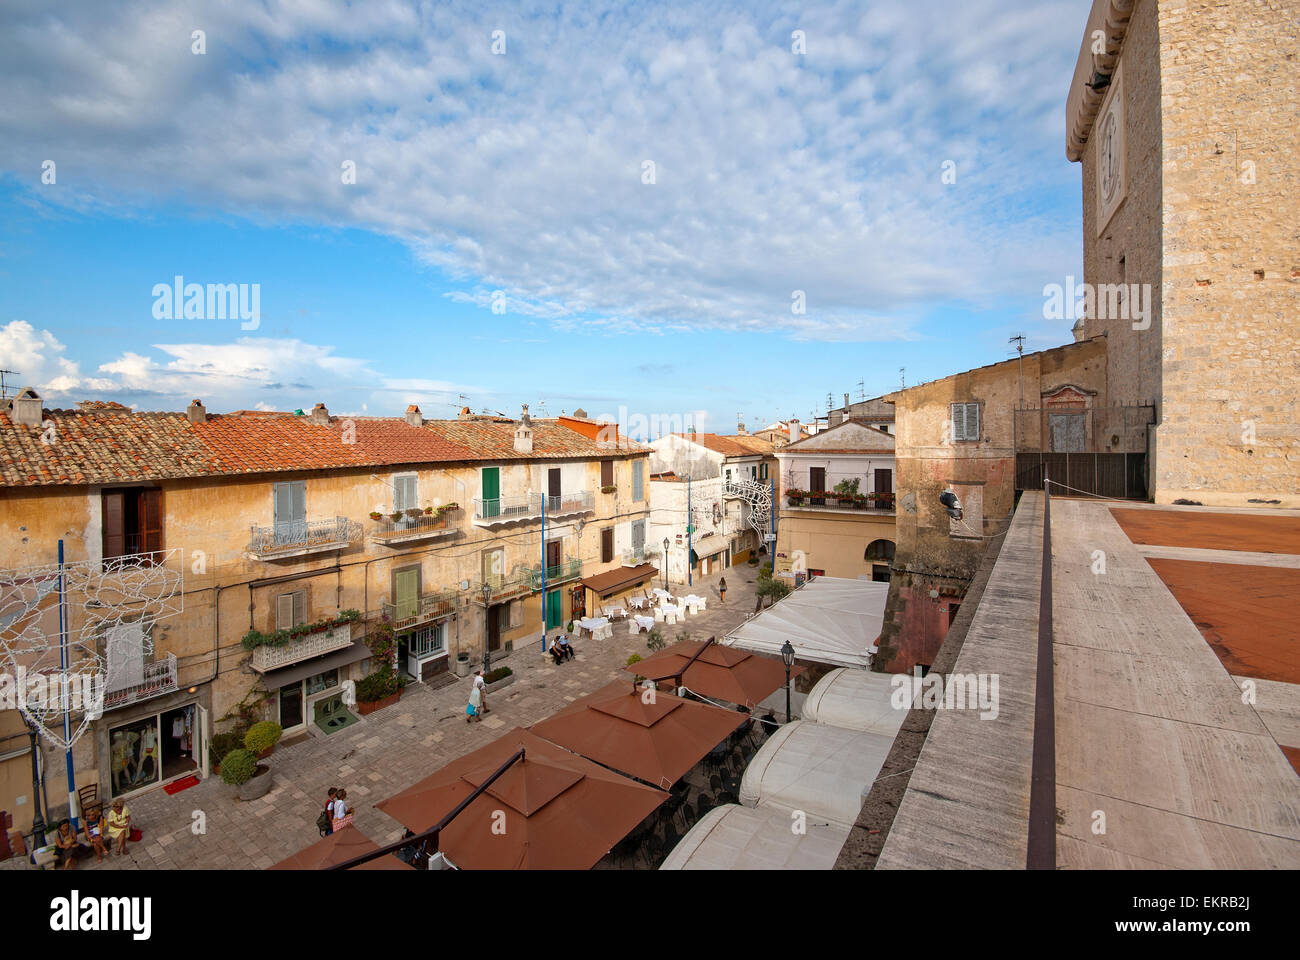 San Felice Circeo, view of the old town centre (on the right the Tower of Templar Knights), Lazio, Italy - Stock Image